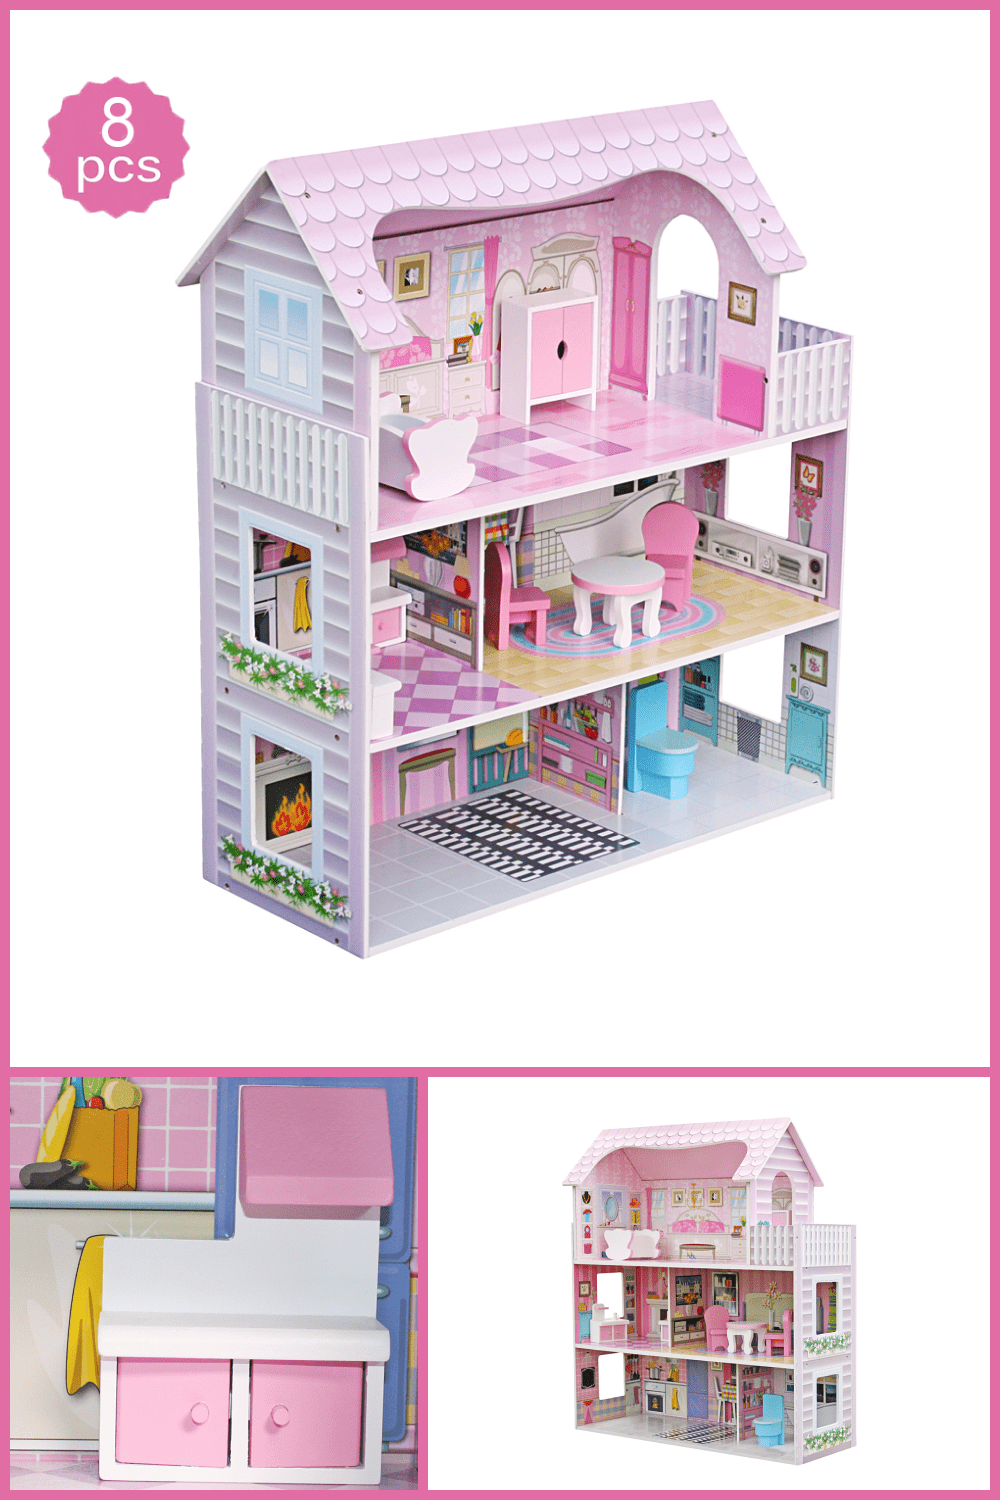 A pink dollhouse in which the story unfolds according to your child's script.